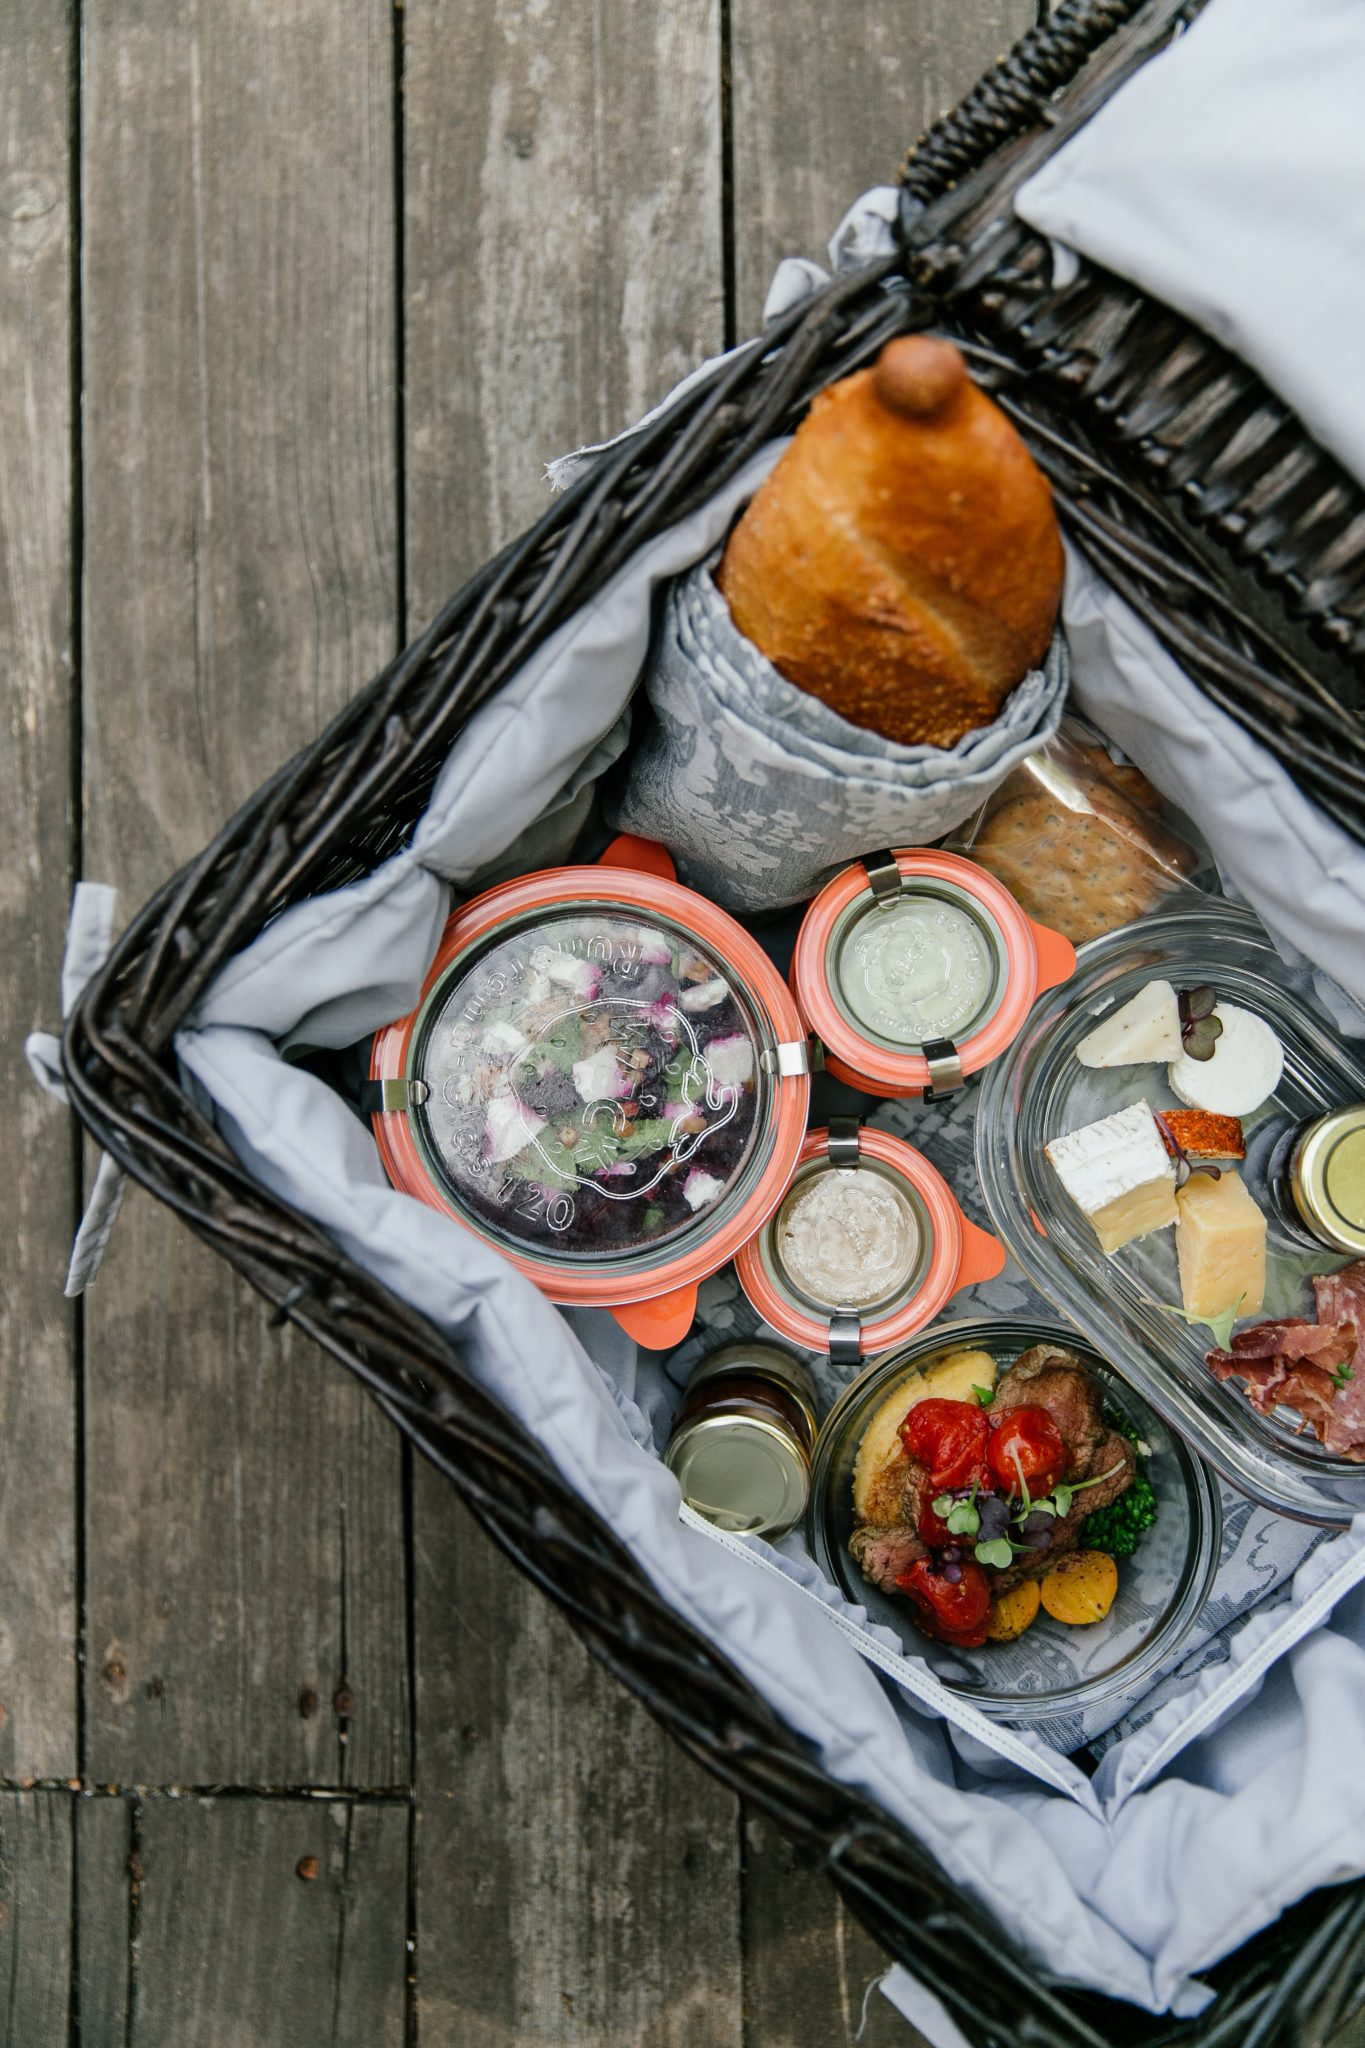 Knorhoek Valentine's picnic for two to share, Sonia Cabano blog eatdrinkcapetown